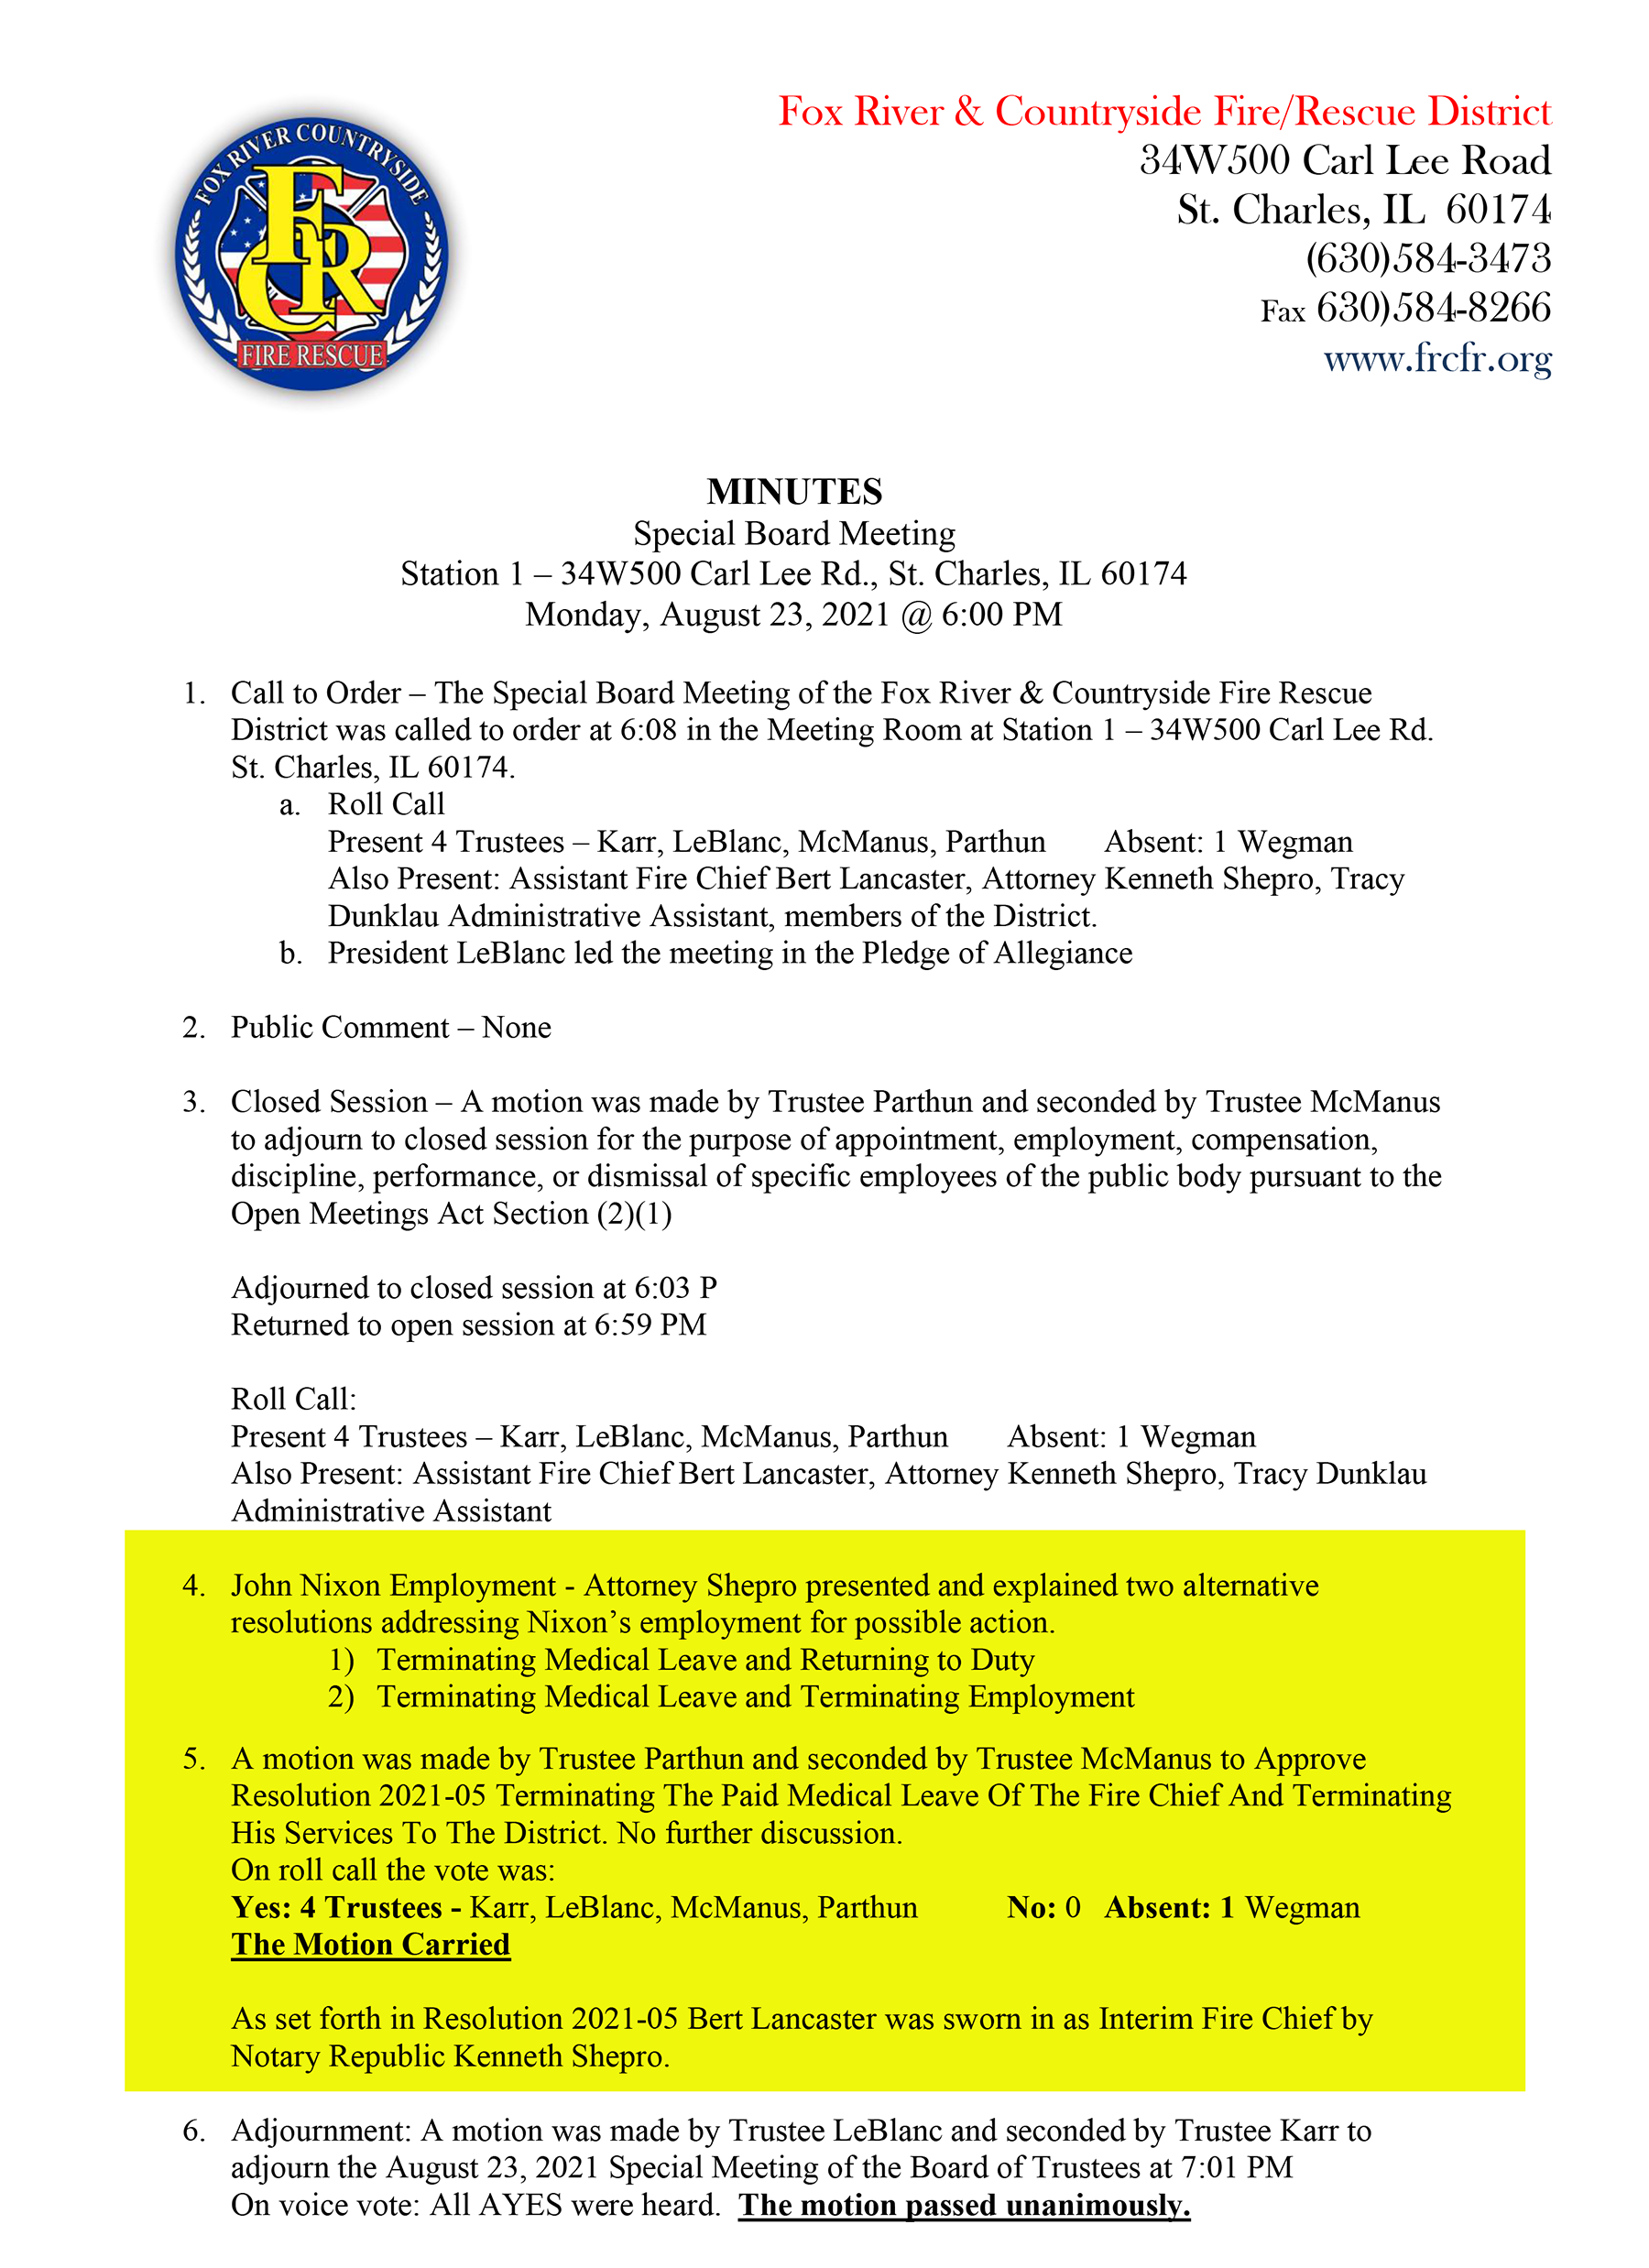 Fox River & Countryside Fire/Rescue District Special Board Meeting Minutes 8-23-2021